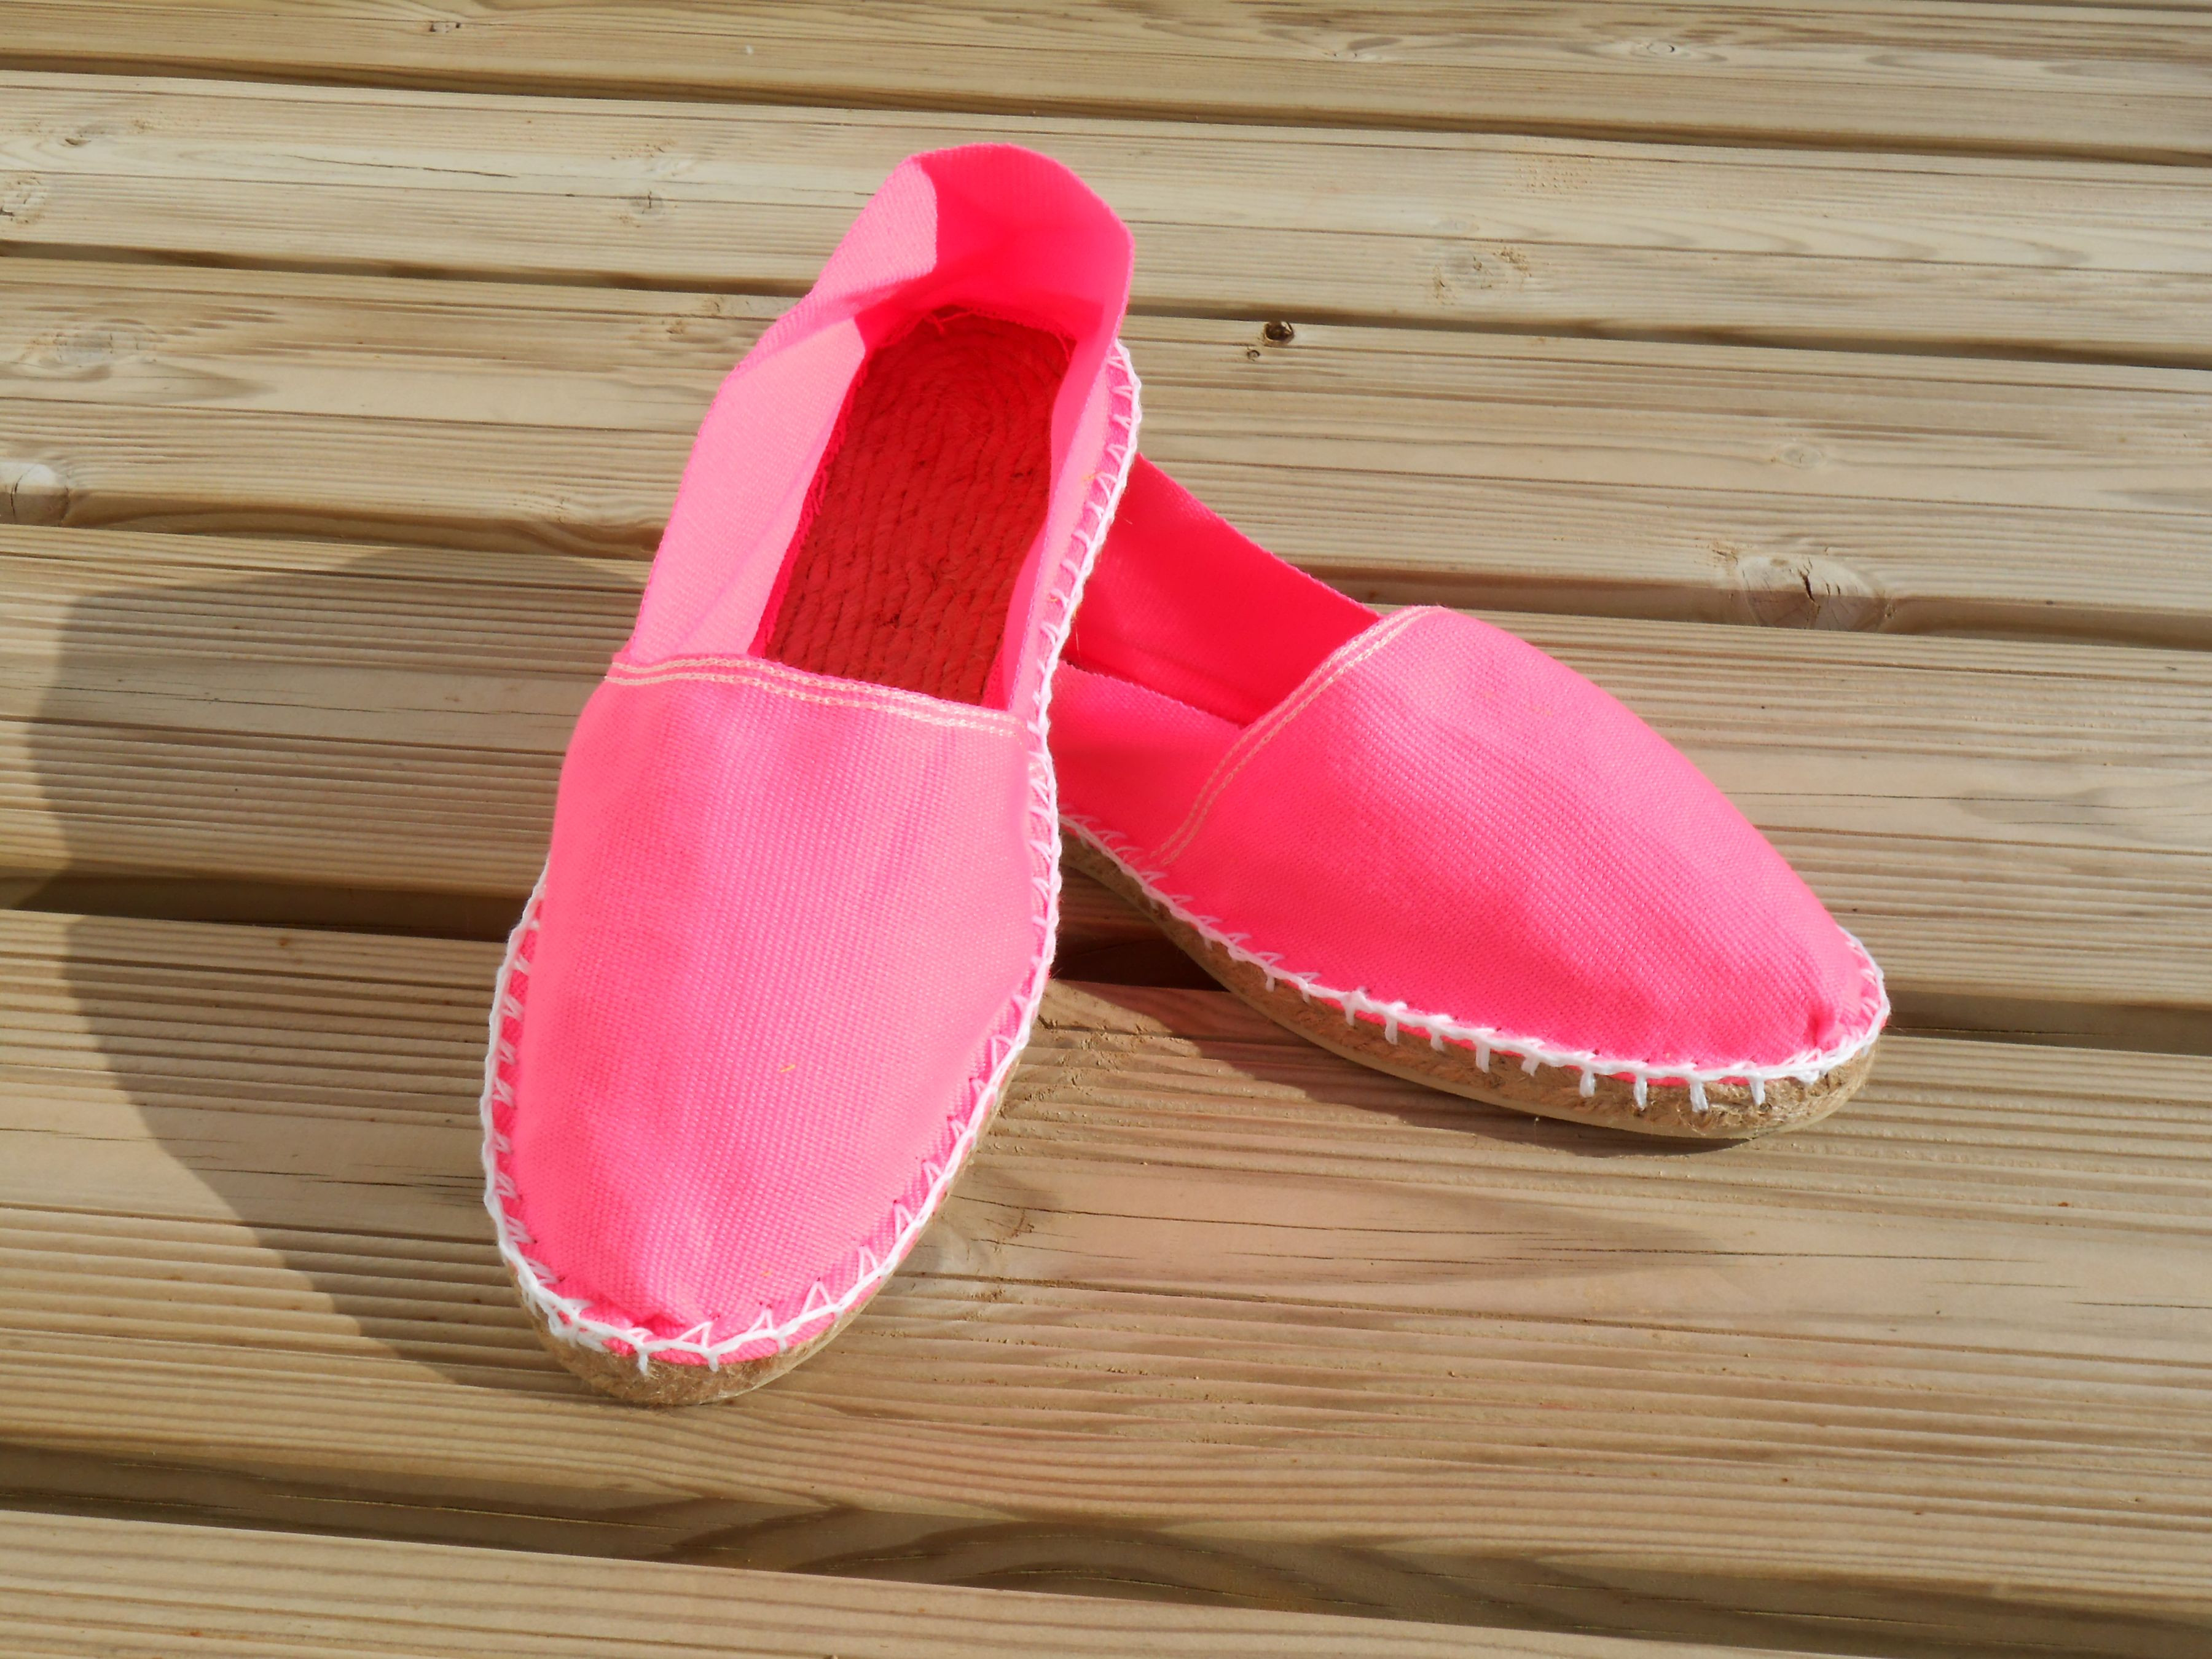 Espadrilles basques rose fluo taille 42